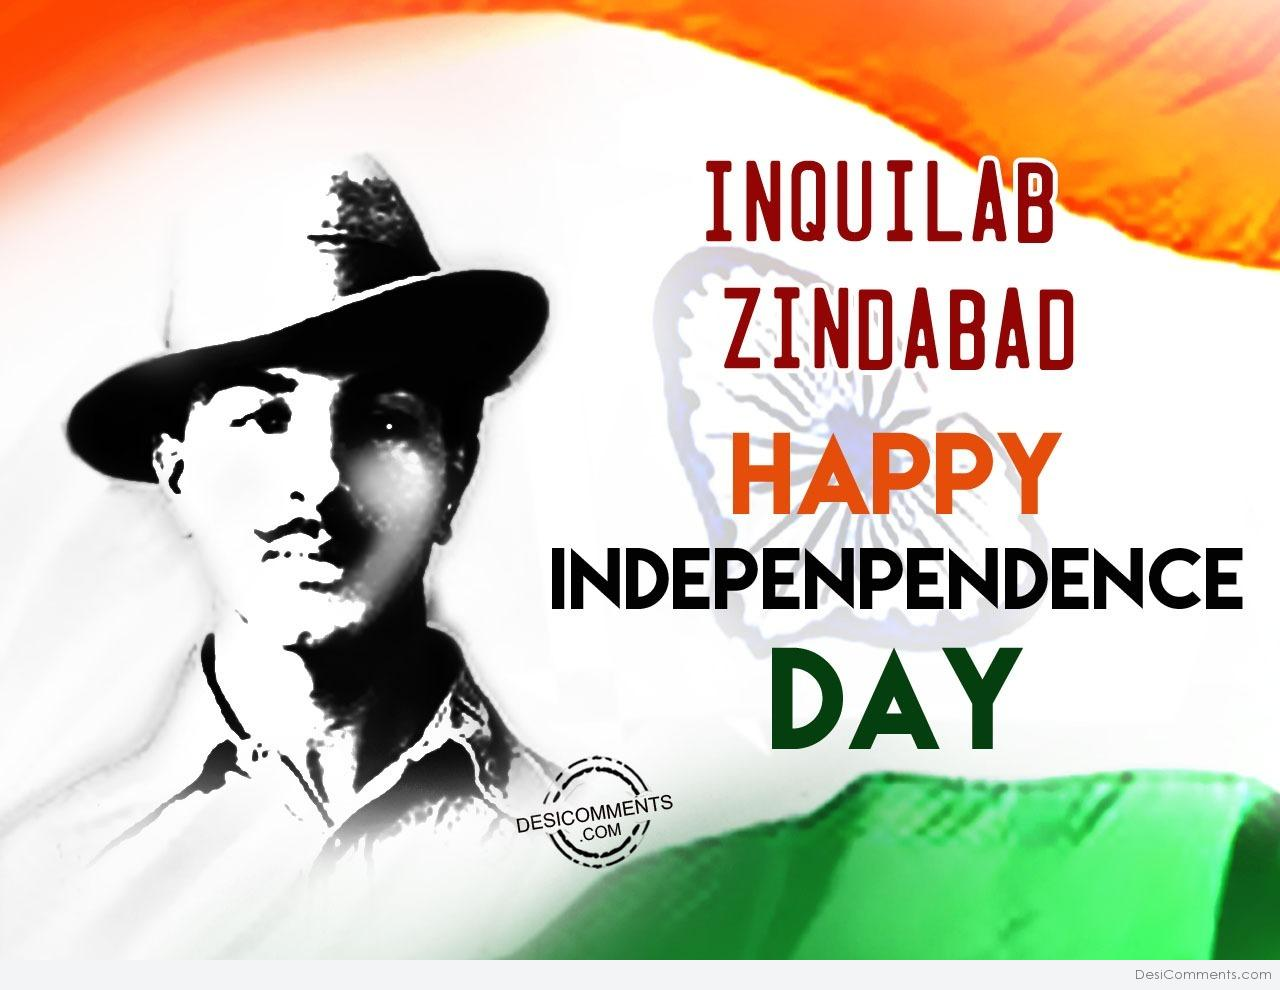 Inquilab Zindabad Happy Independence Day DesiComments Com